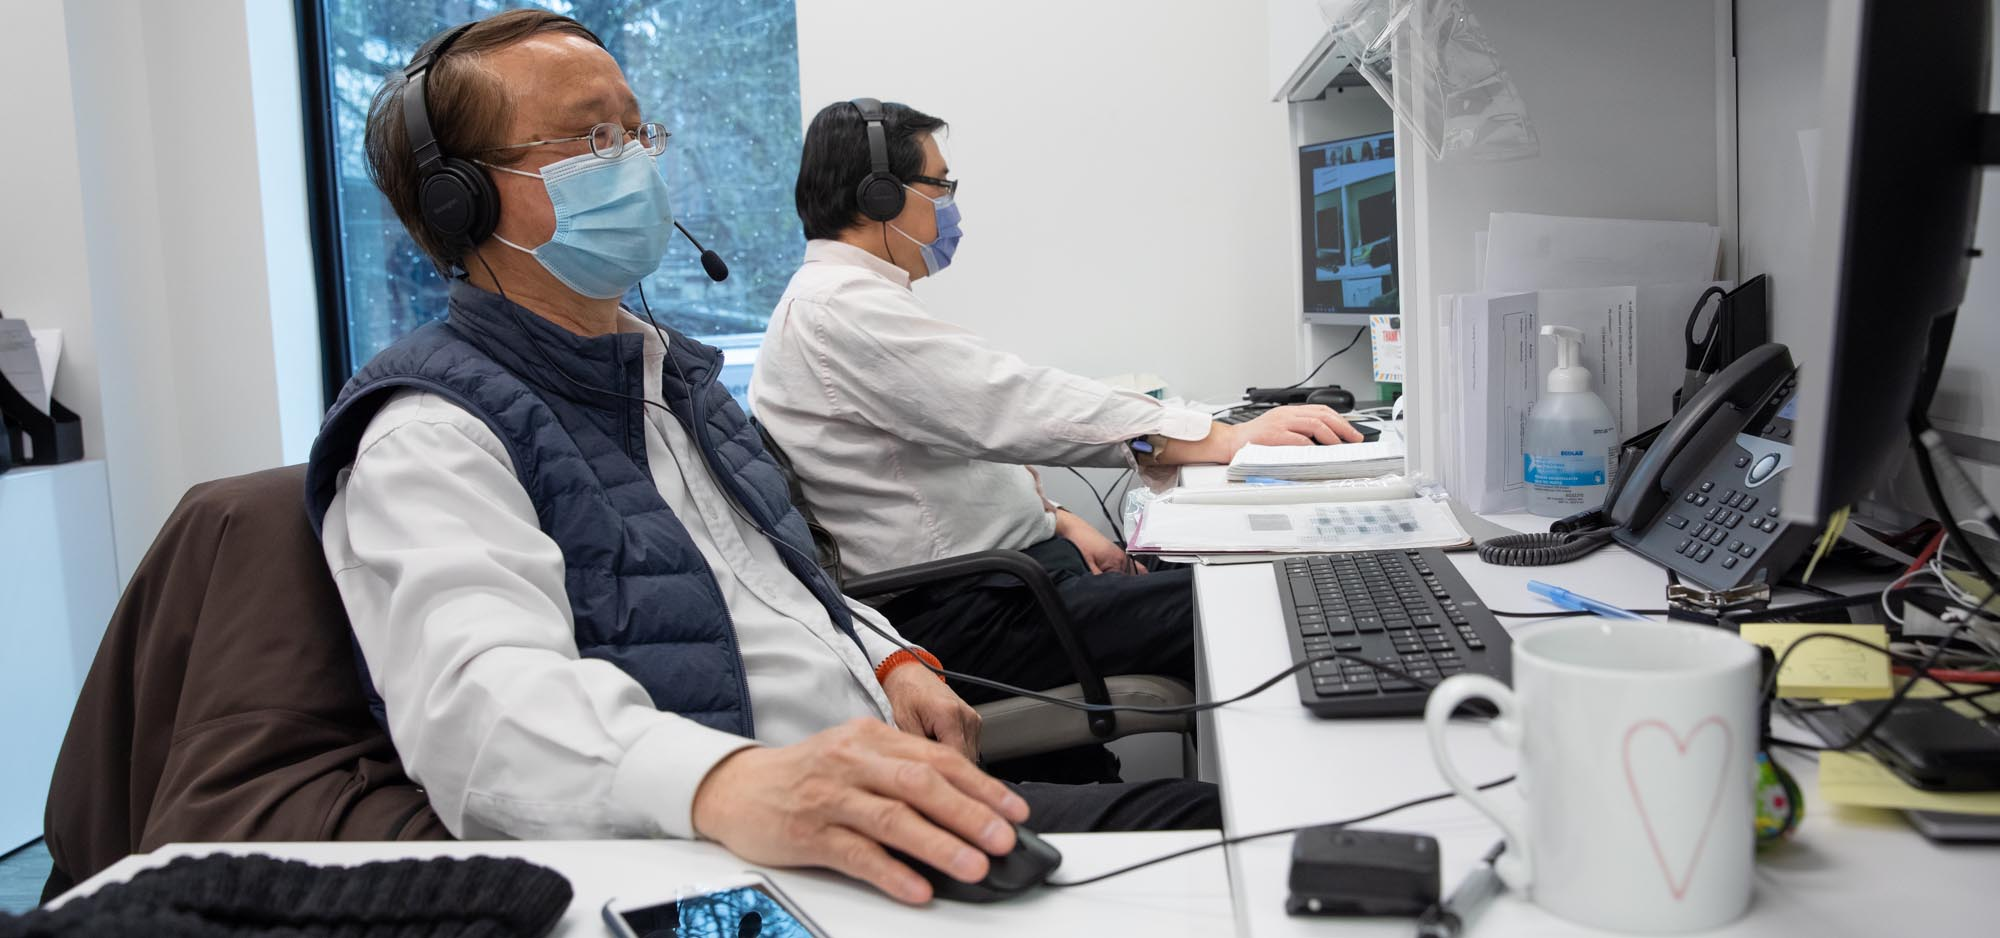 2 men in masks, looking at their computers